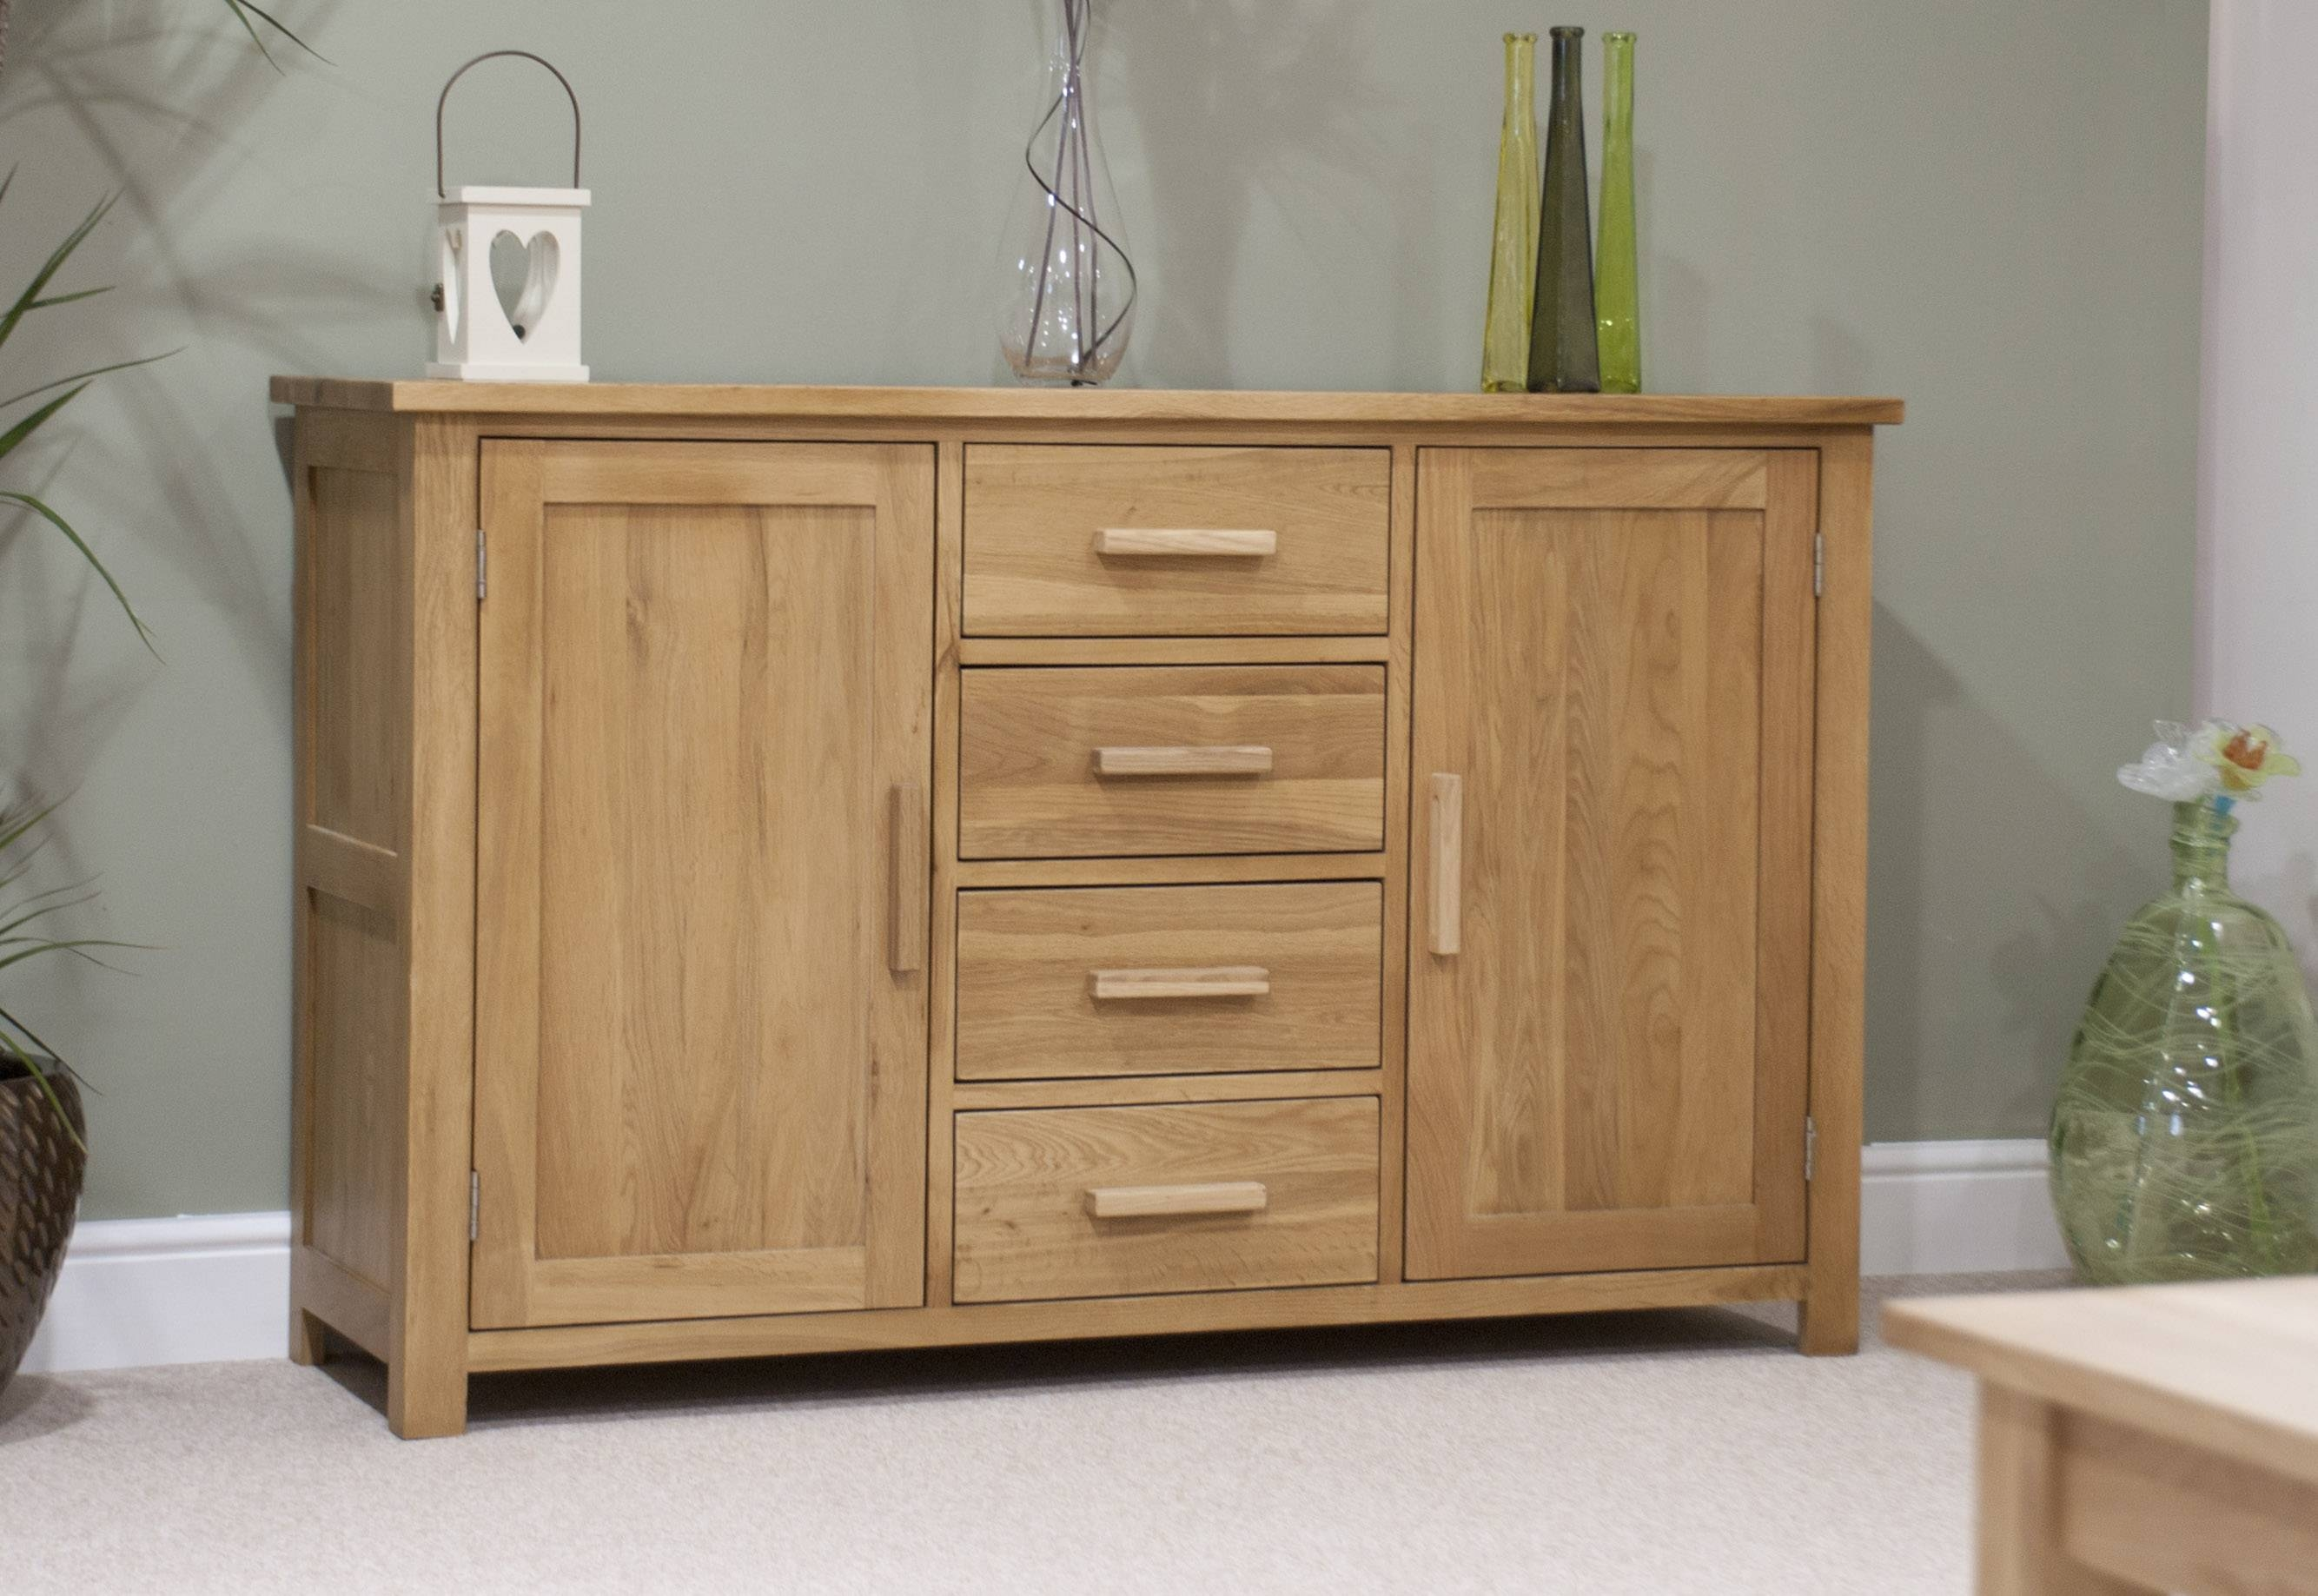 Fantastic Furniture | Pine And Oak | Furniture Workshoppe within Oak Sideboards (Image 12 of 30)